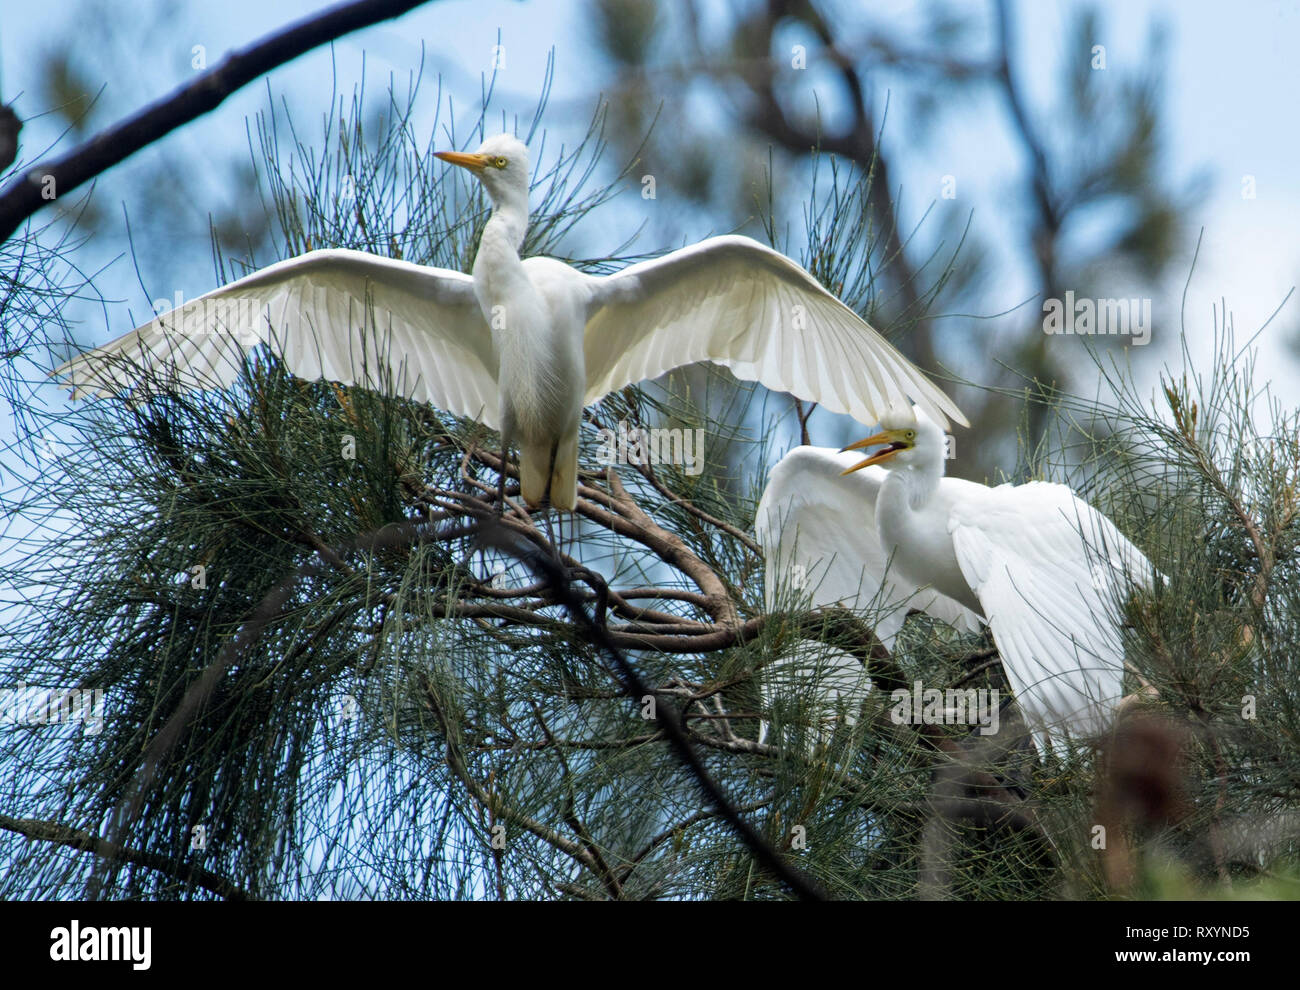 Australian plumed / intermediate egret, Ardea intermedia, wings outstretched with fledgling / chick among foliage of trees begging for food - Stock Image